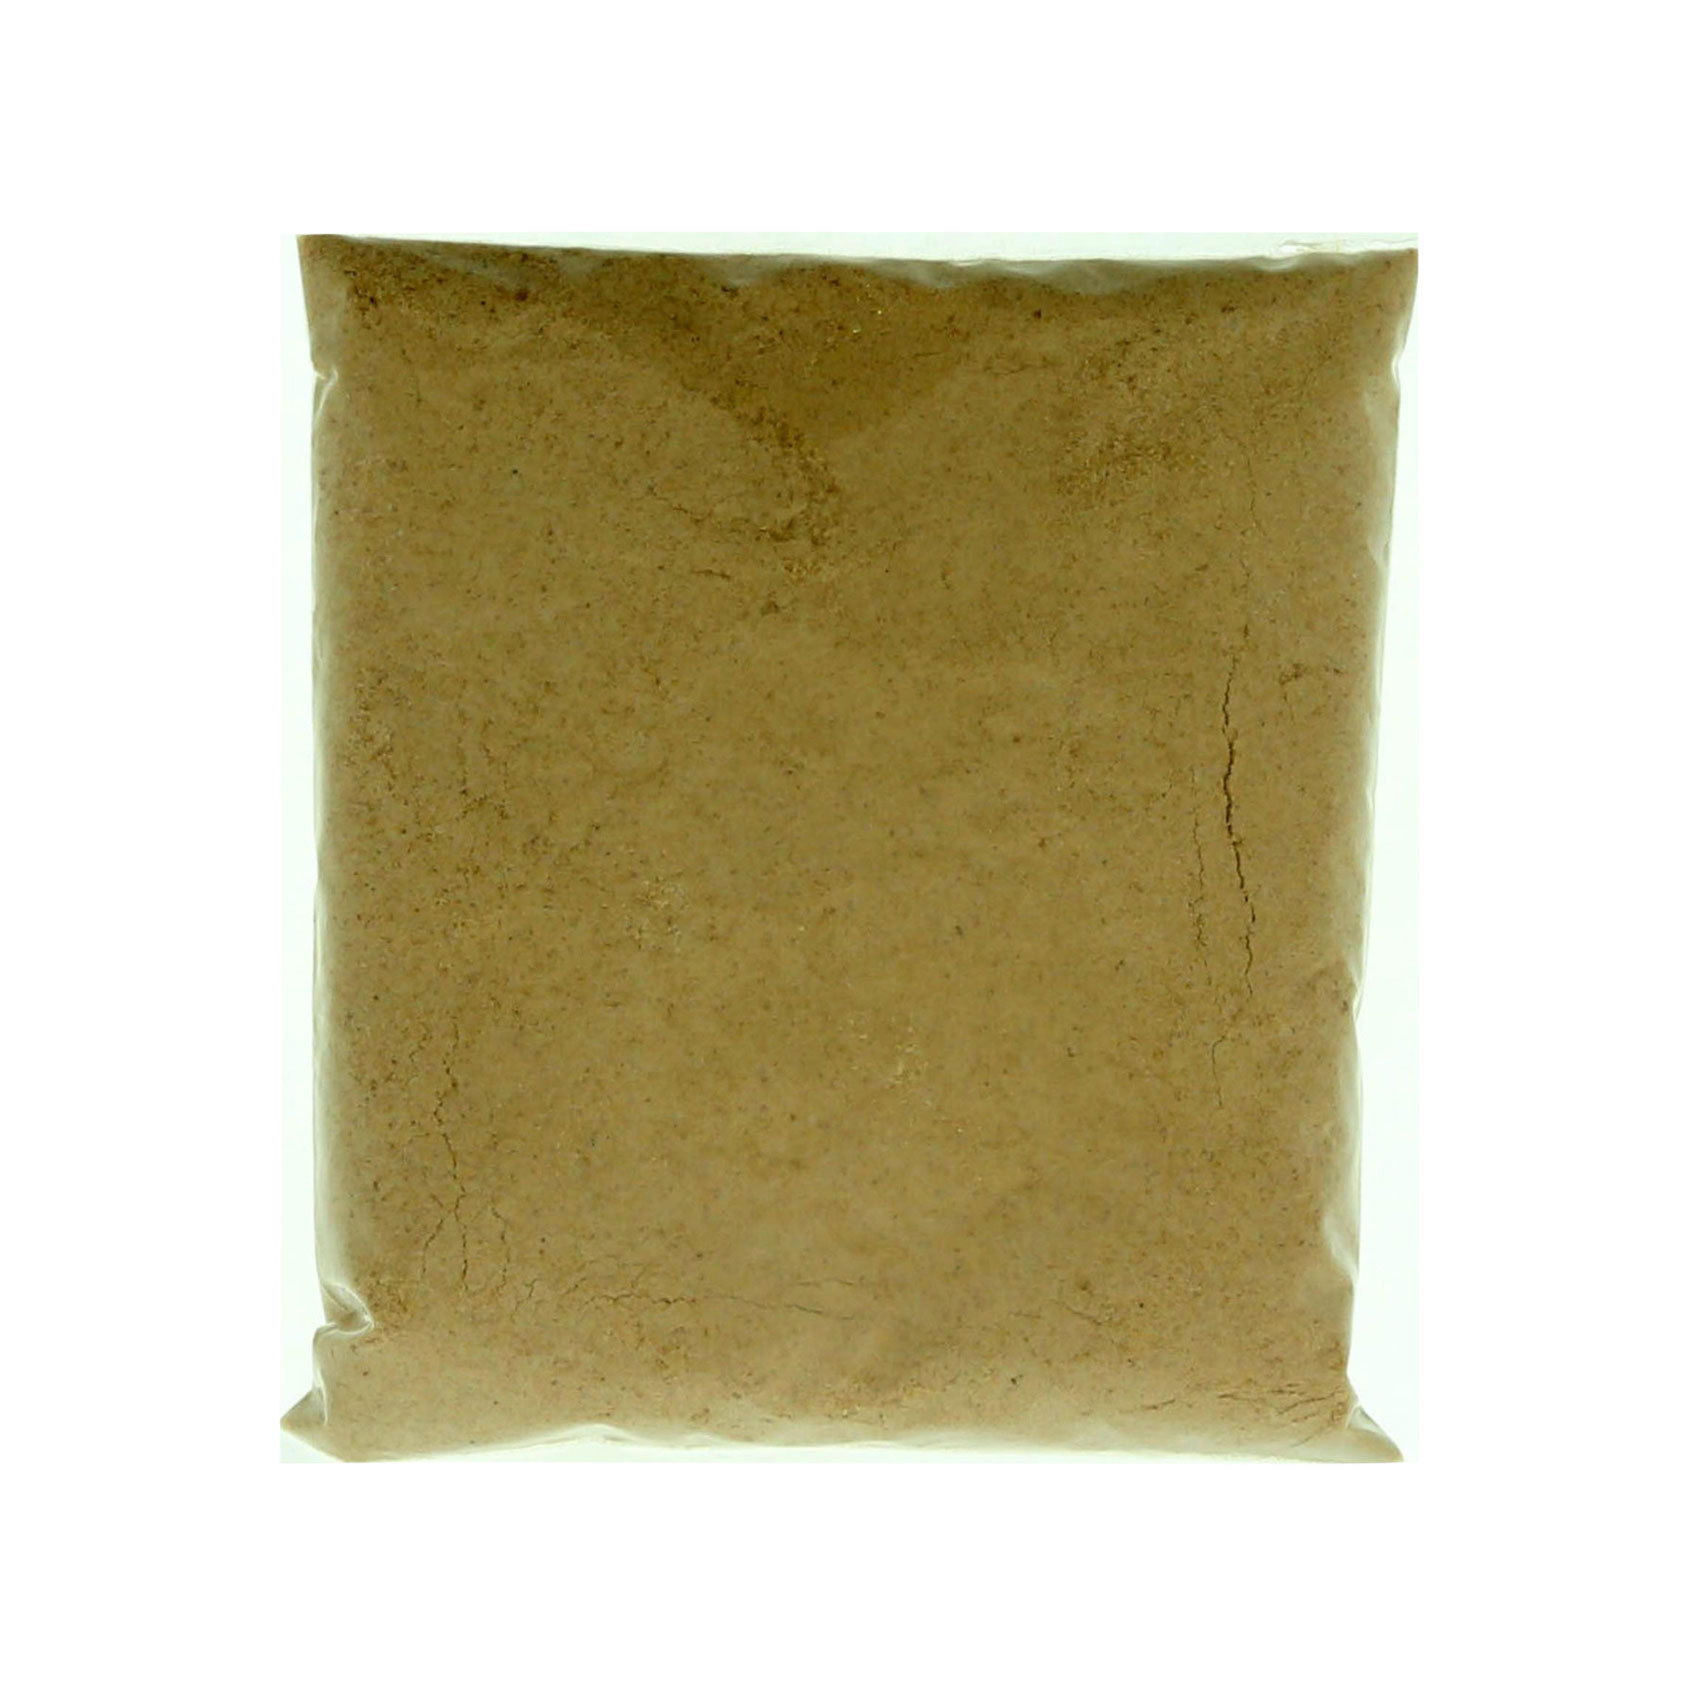 G/LOAF BREAD CRUMBS 500G